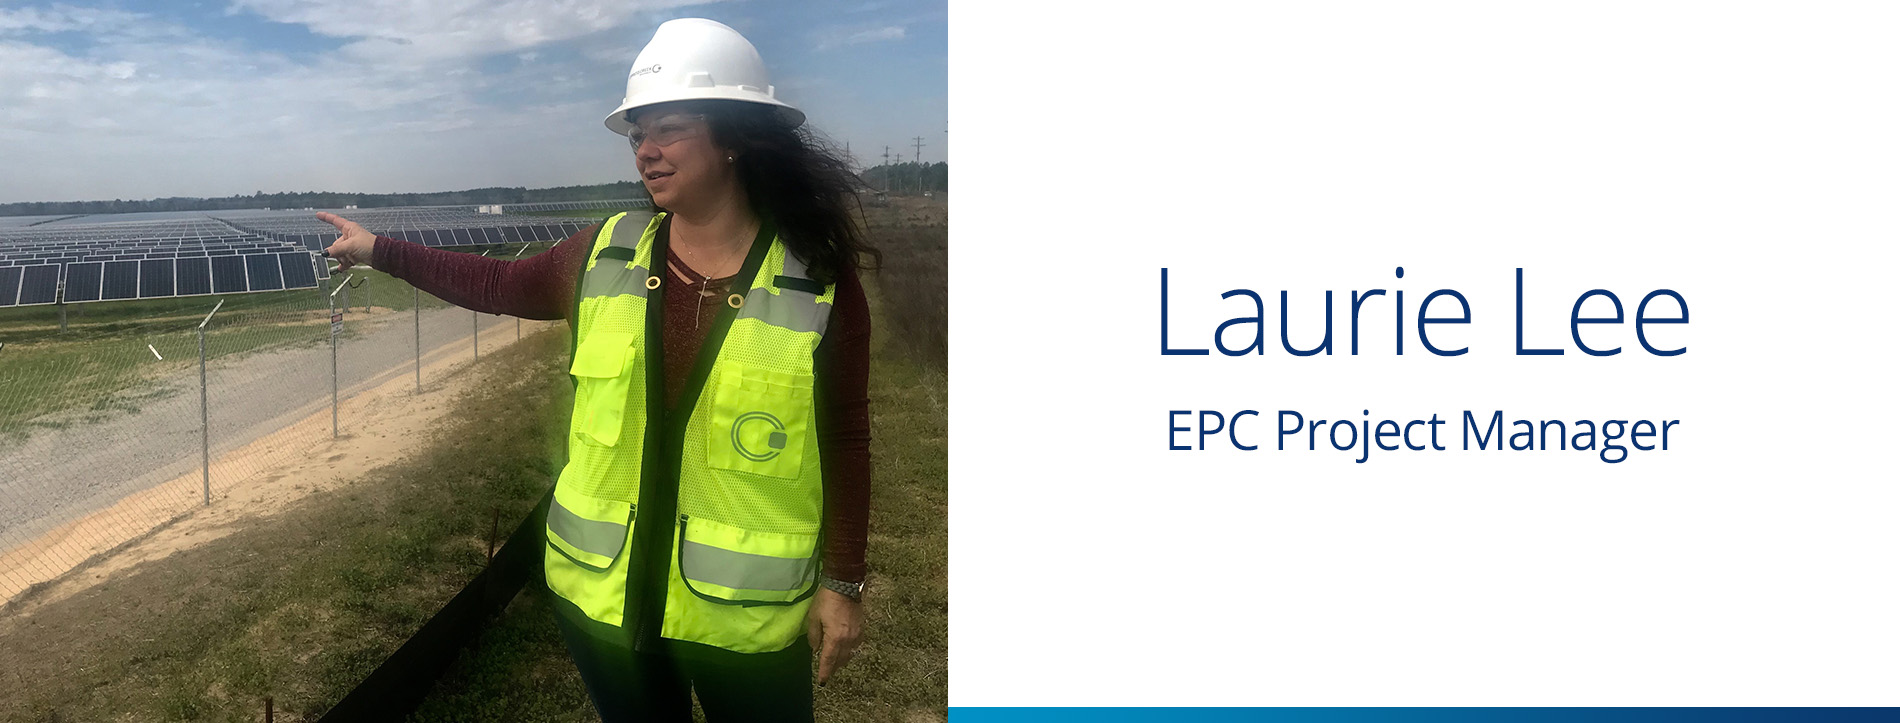 CCR Employee Laurie Lee